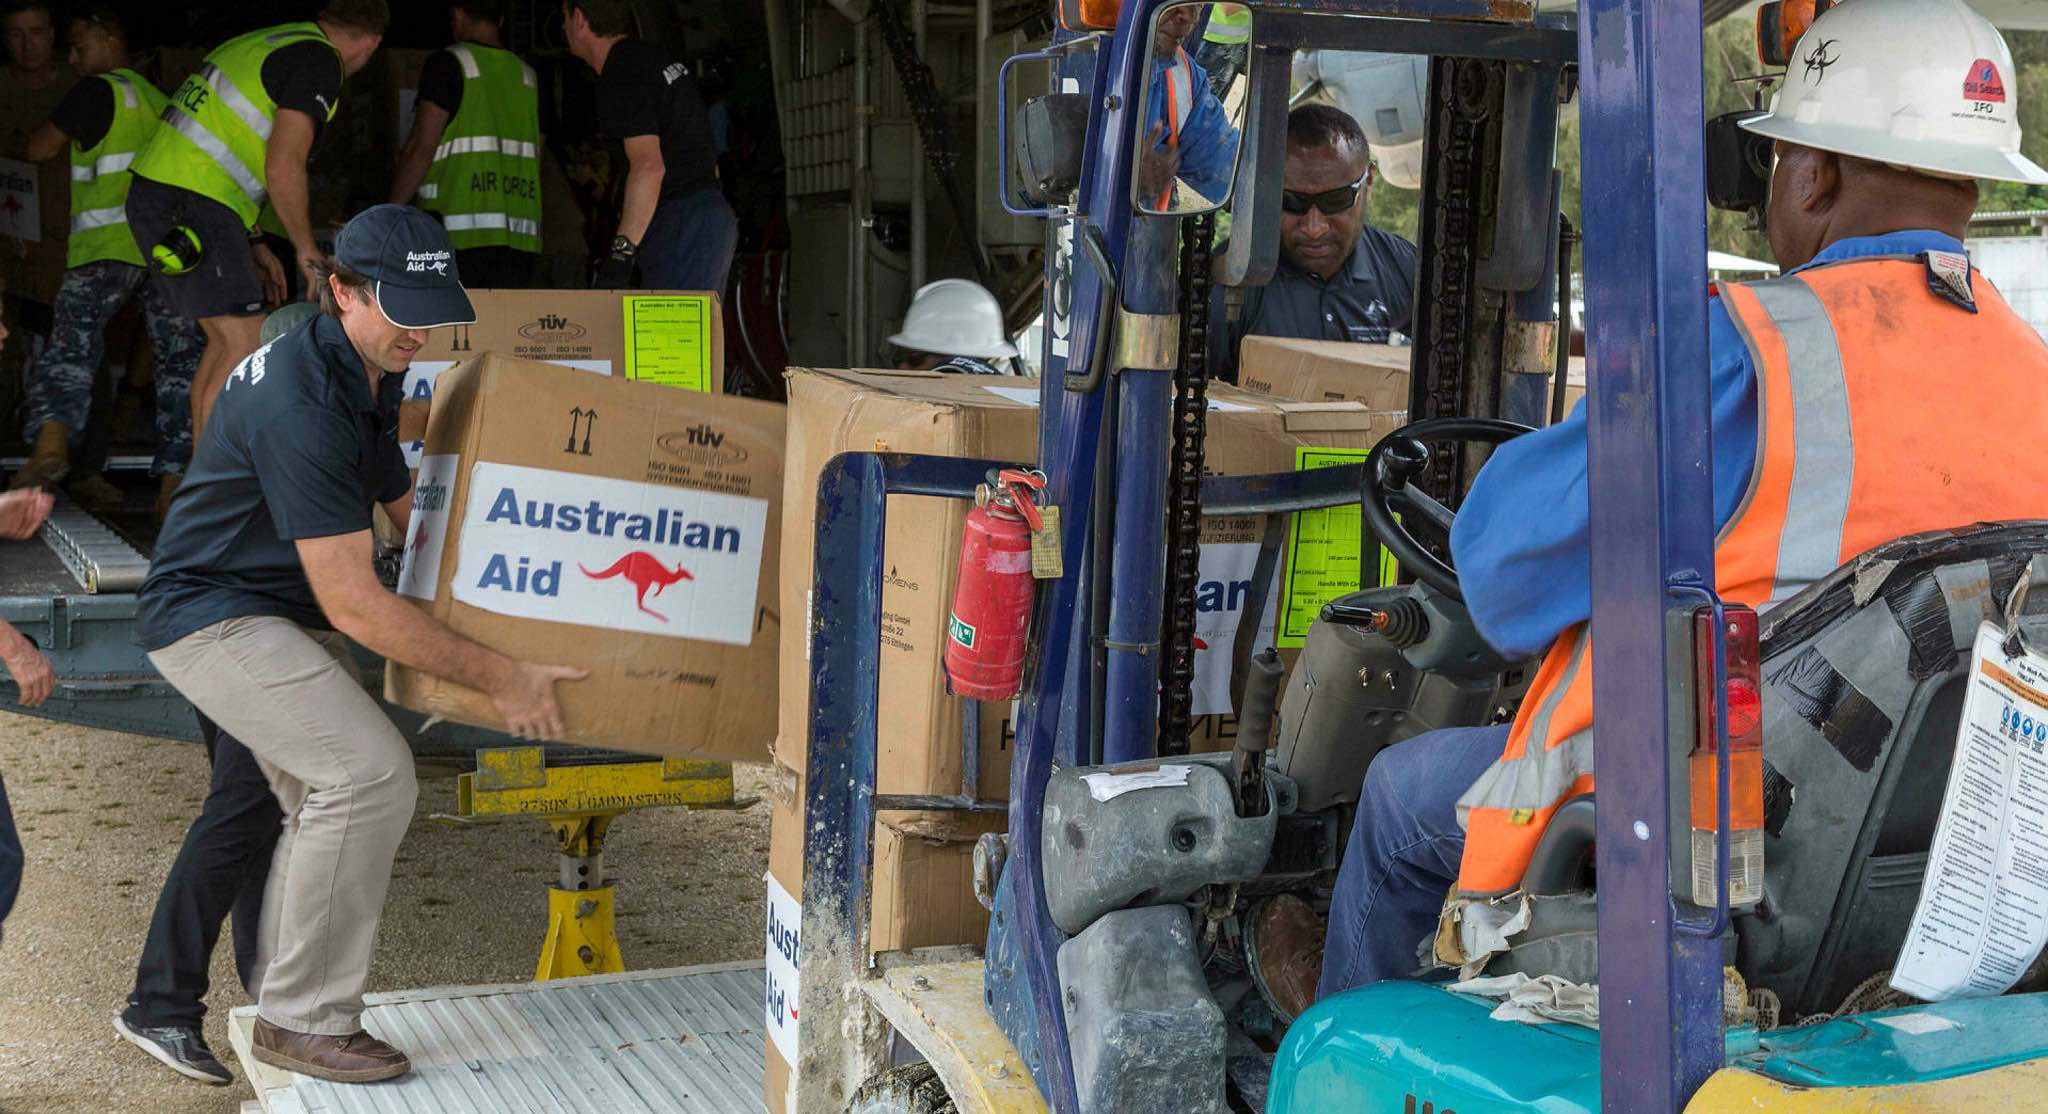 Disaster relief supplies from Australia arrive in PNG (Photo: Defence Department)